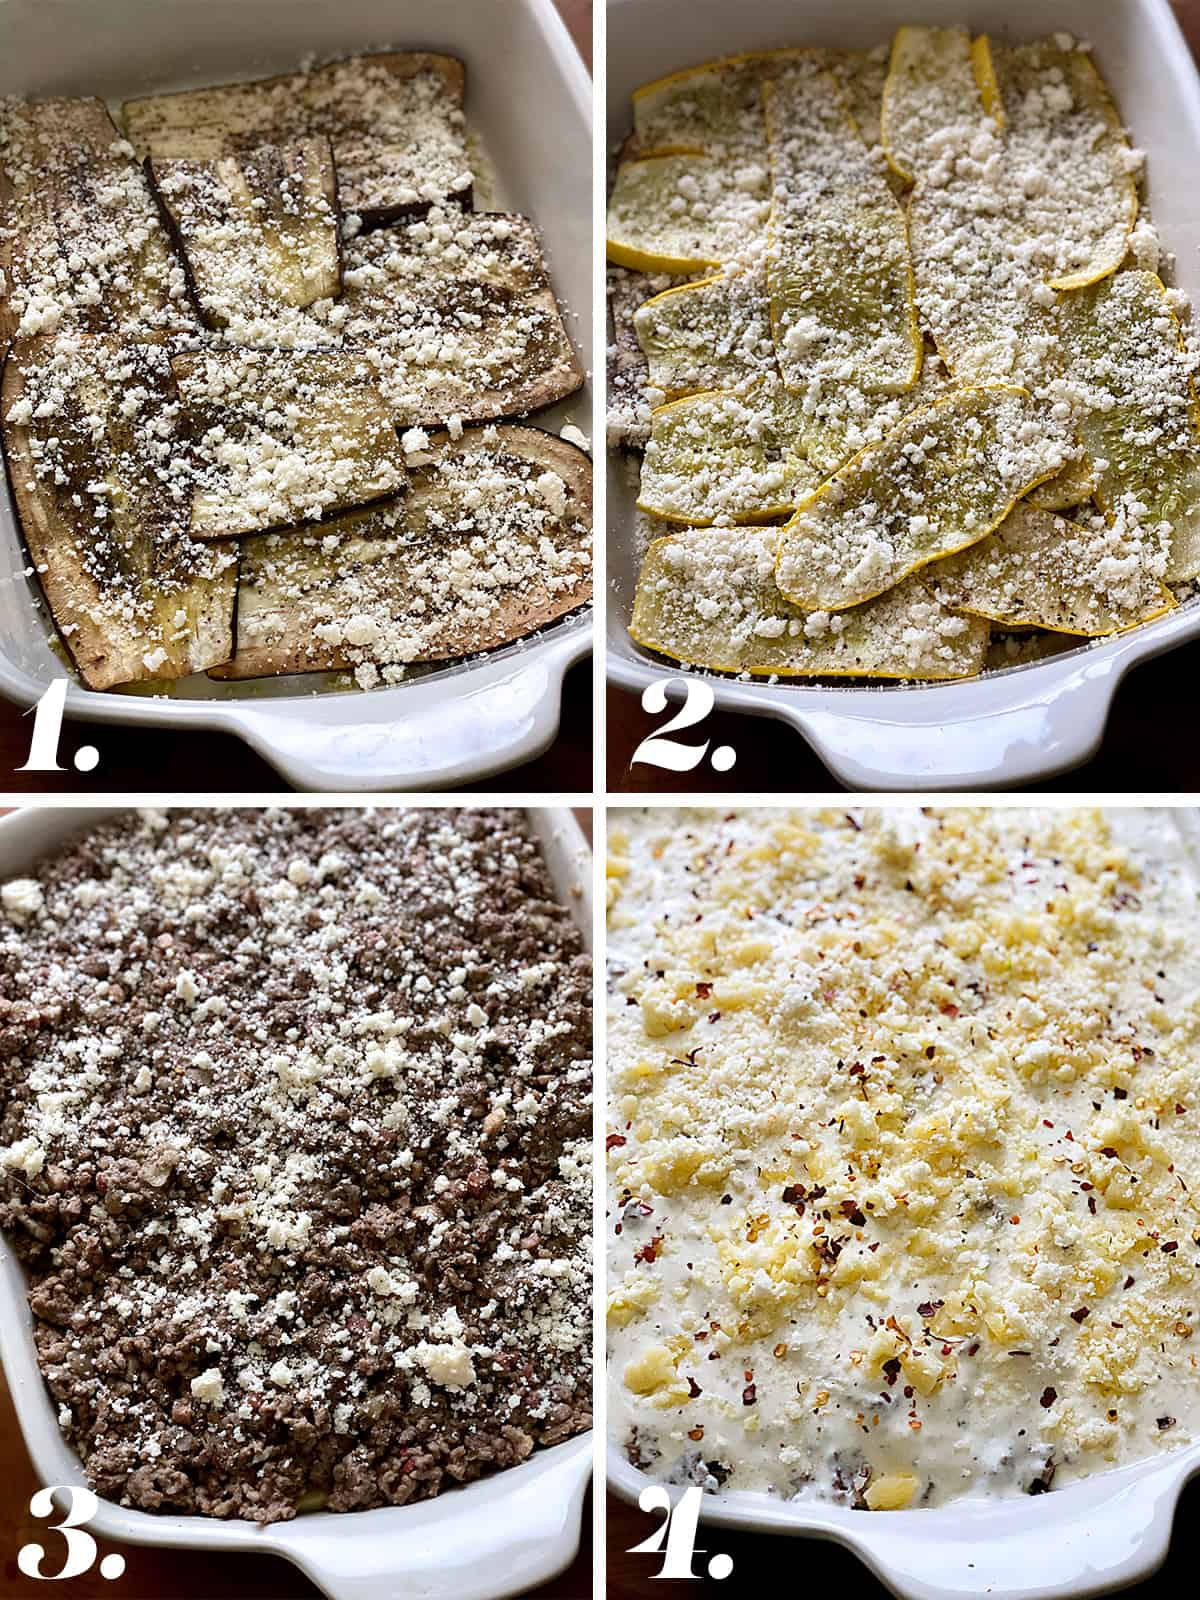 Four images. Top left a white baking pan with layered eggplant slices and grated cheese. Top right, a white baking pan with layers yellow squash and grated cheese. Bottom left, the baking pan with meat sauce and grated cheese. Bottom right, the pan with keto cheese sauce and grated cheese.